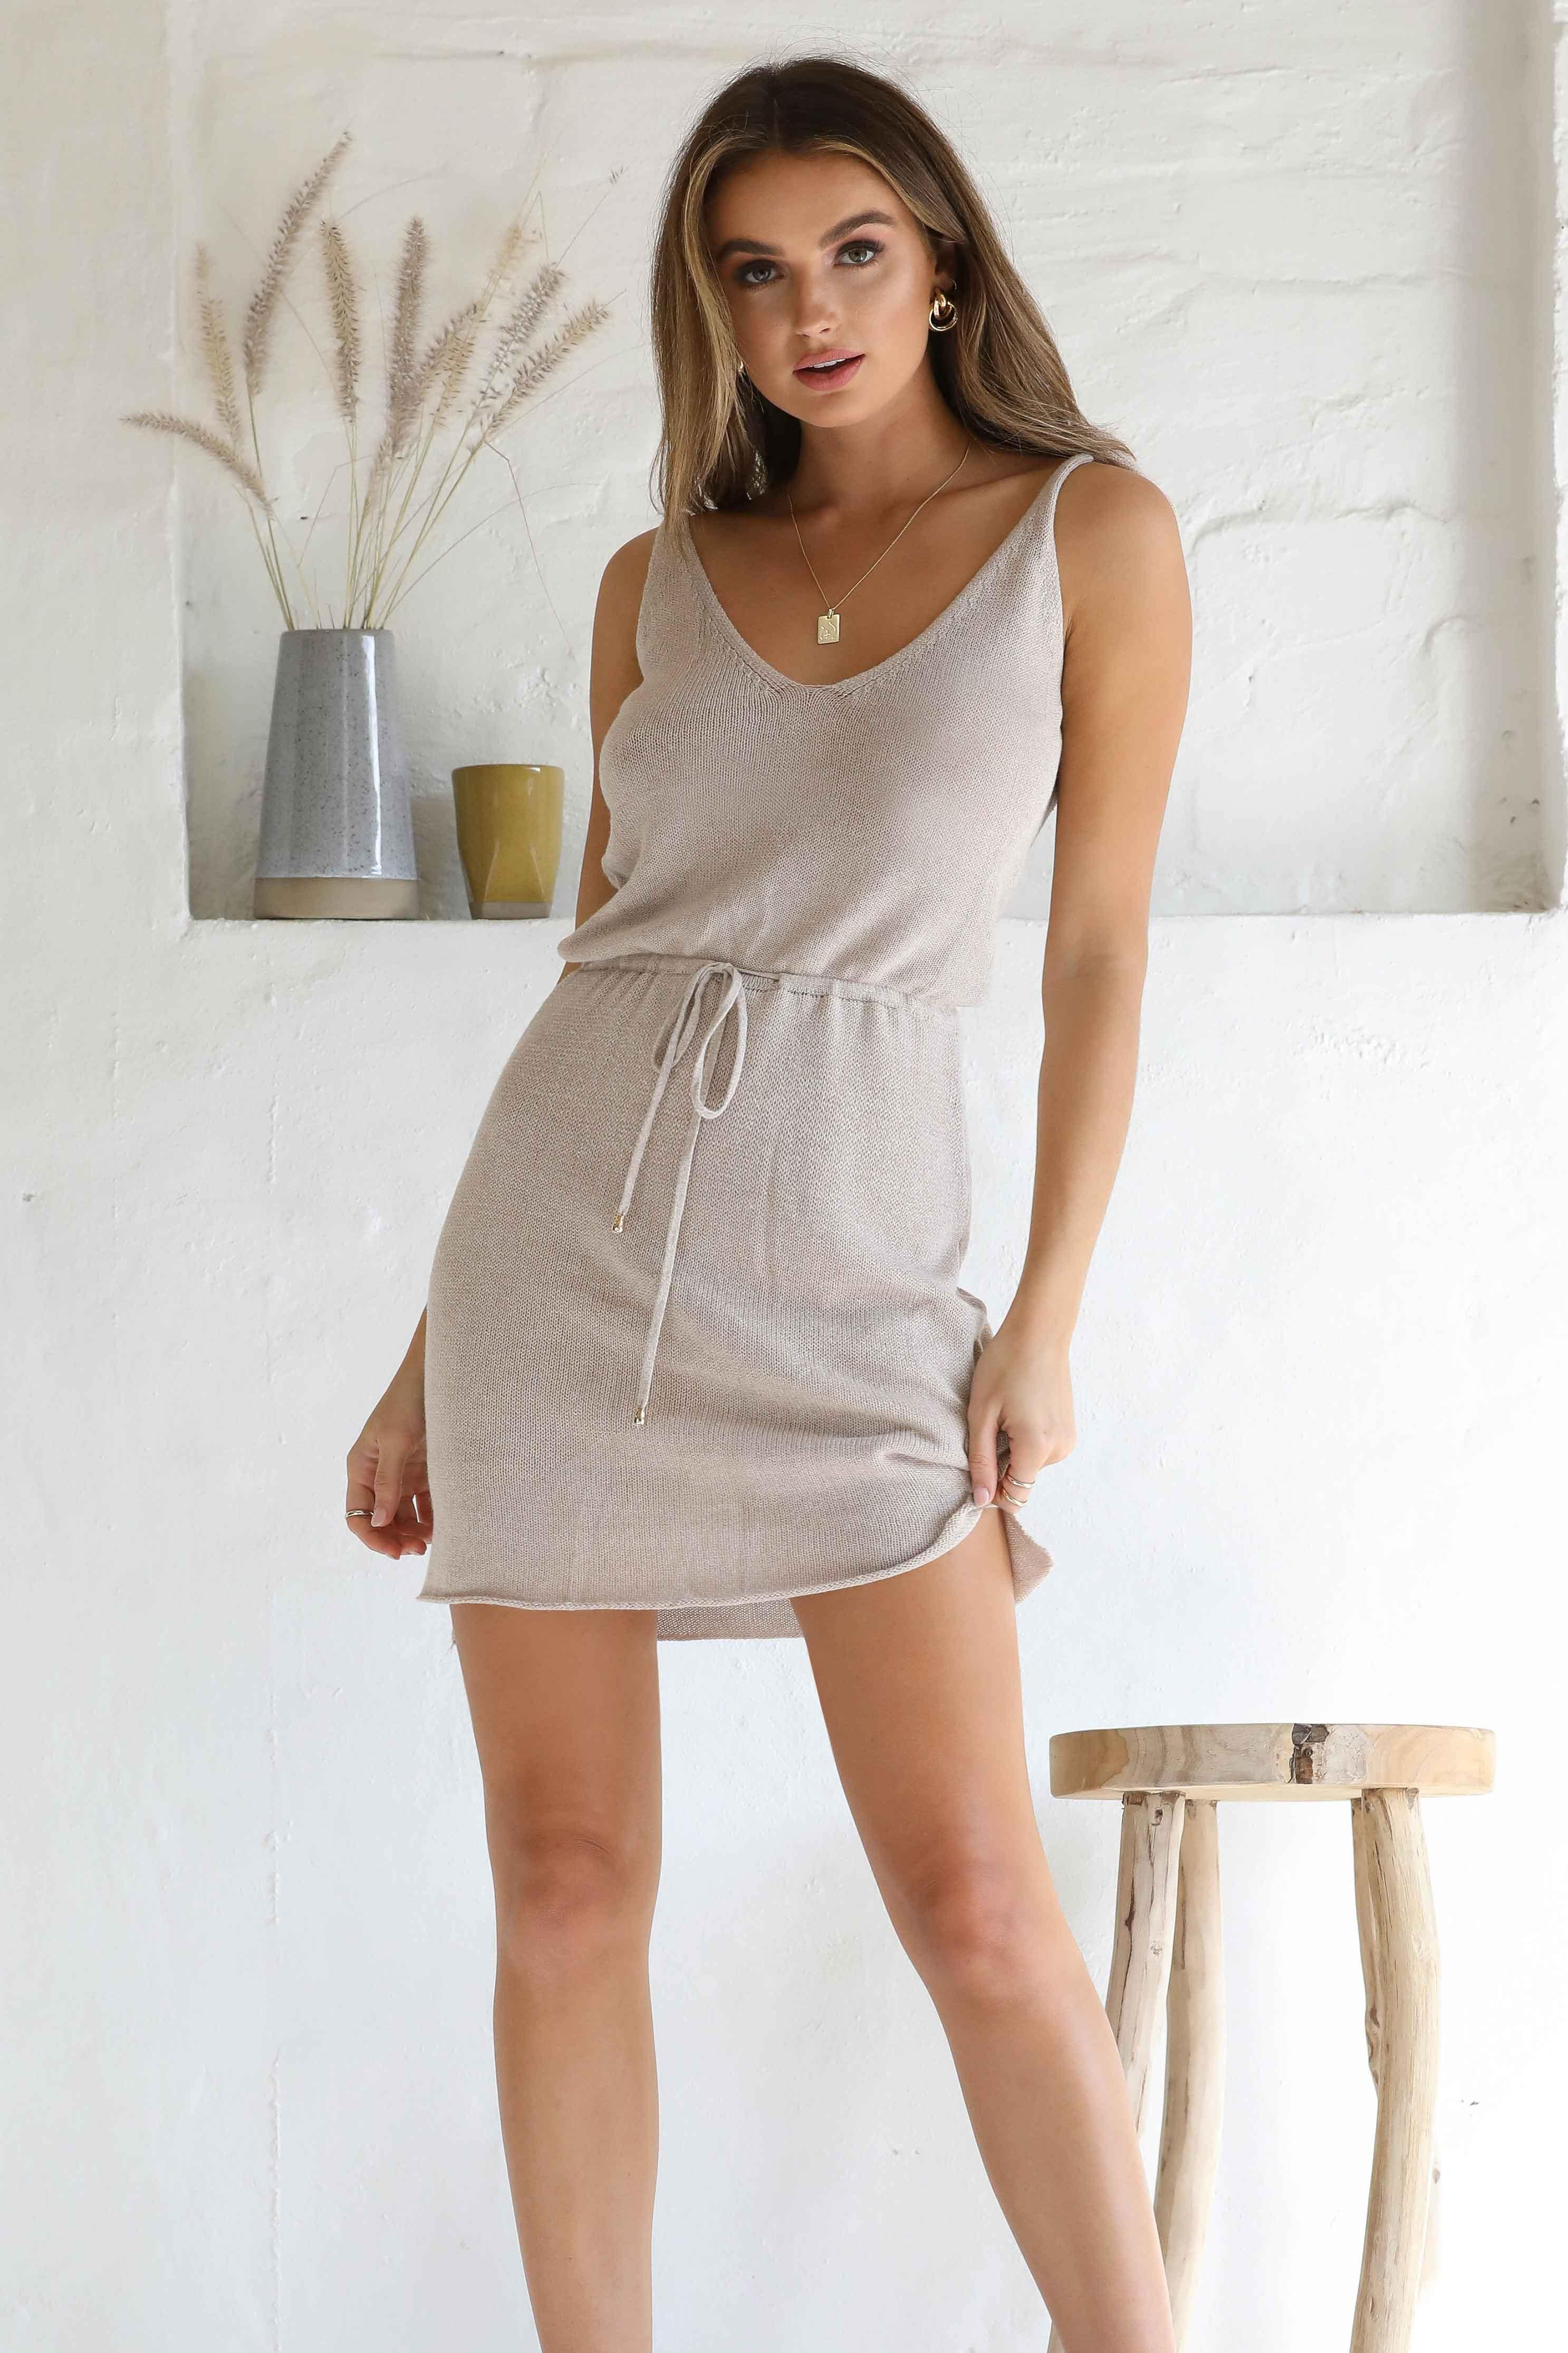 ELLIE KNIT DRESS - OATMEAL | Women's Online Shopping | CHICLEFRIQUE